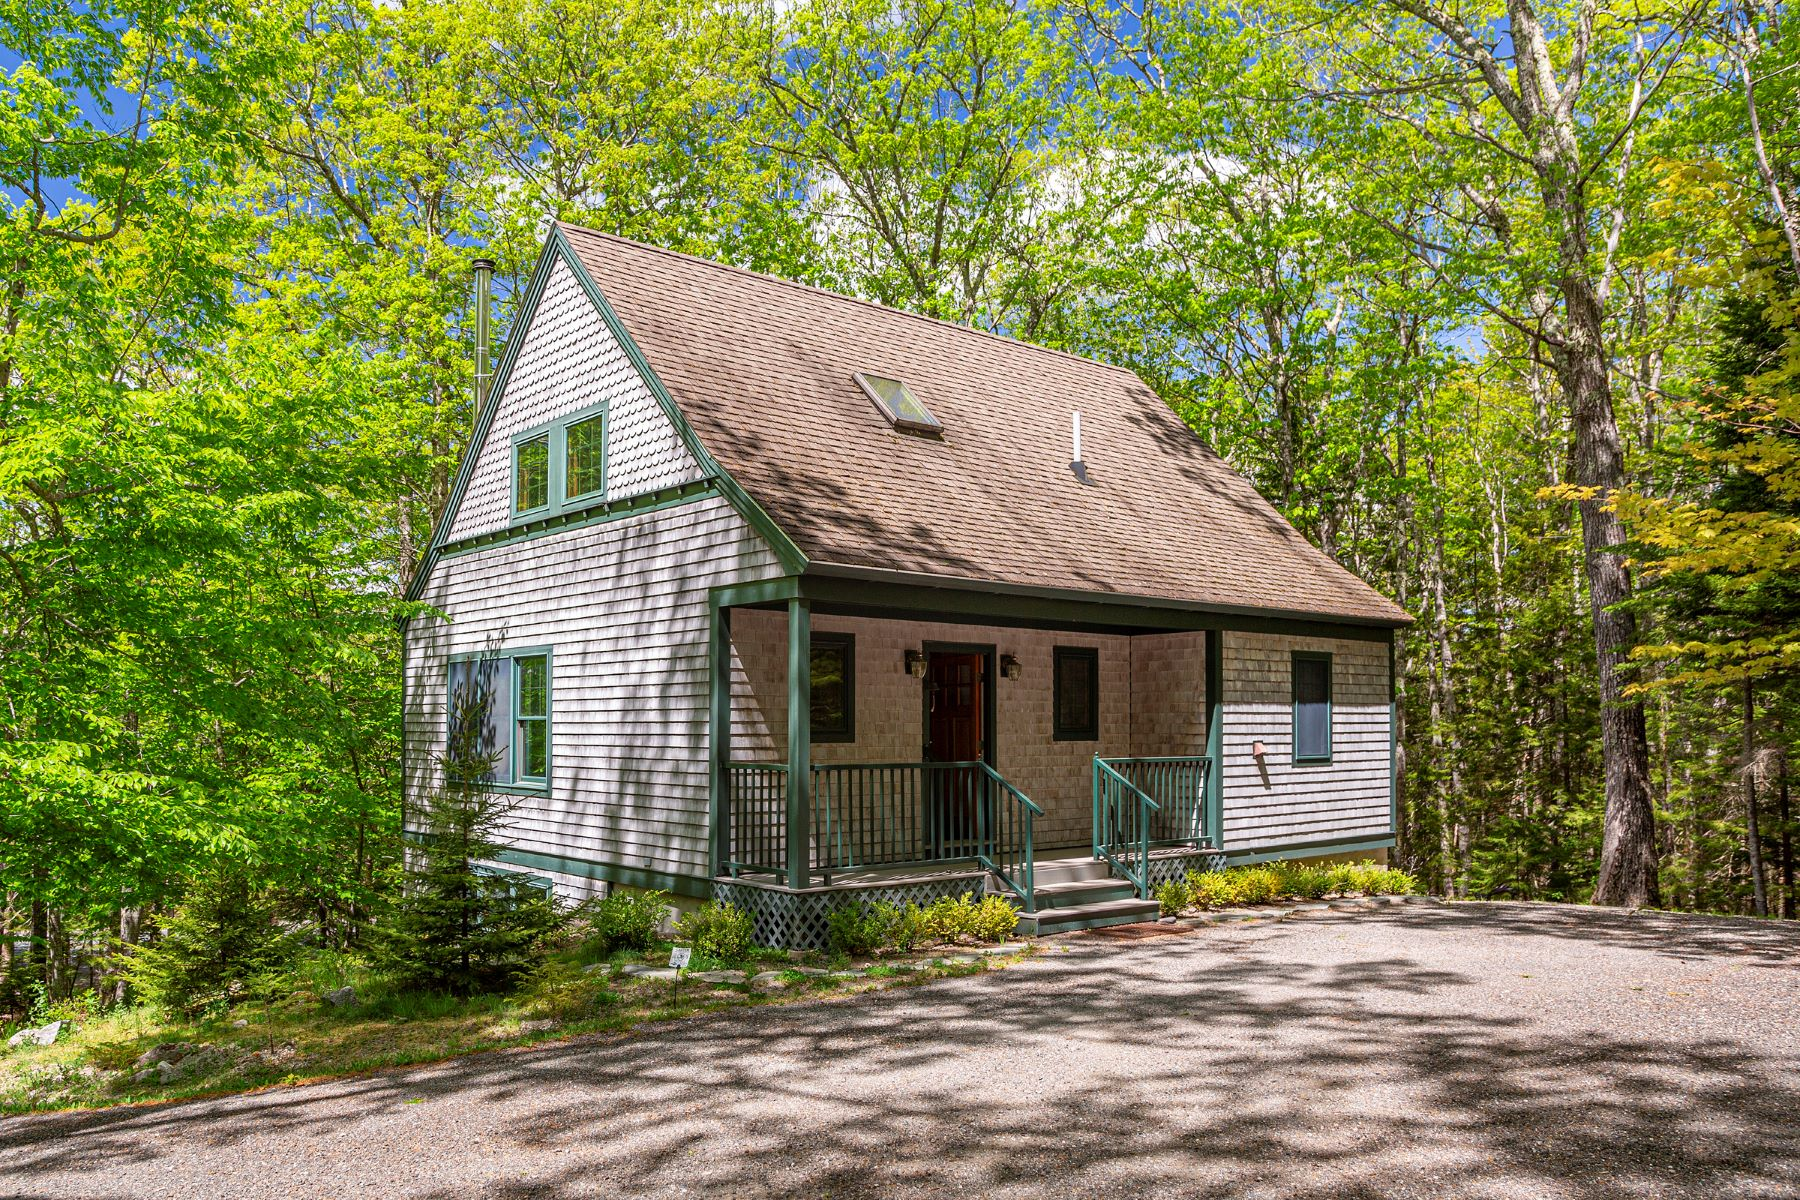 Single Family Homes for Active at The Trail House 343 Sound Drive Mount Desert, Maine 04660 United States